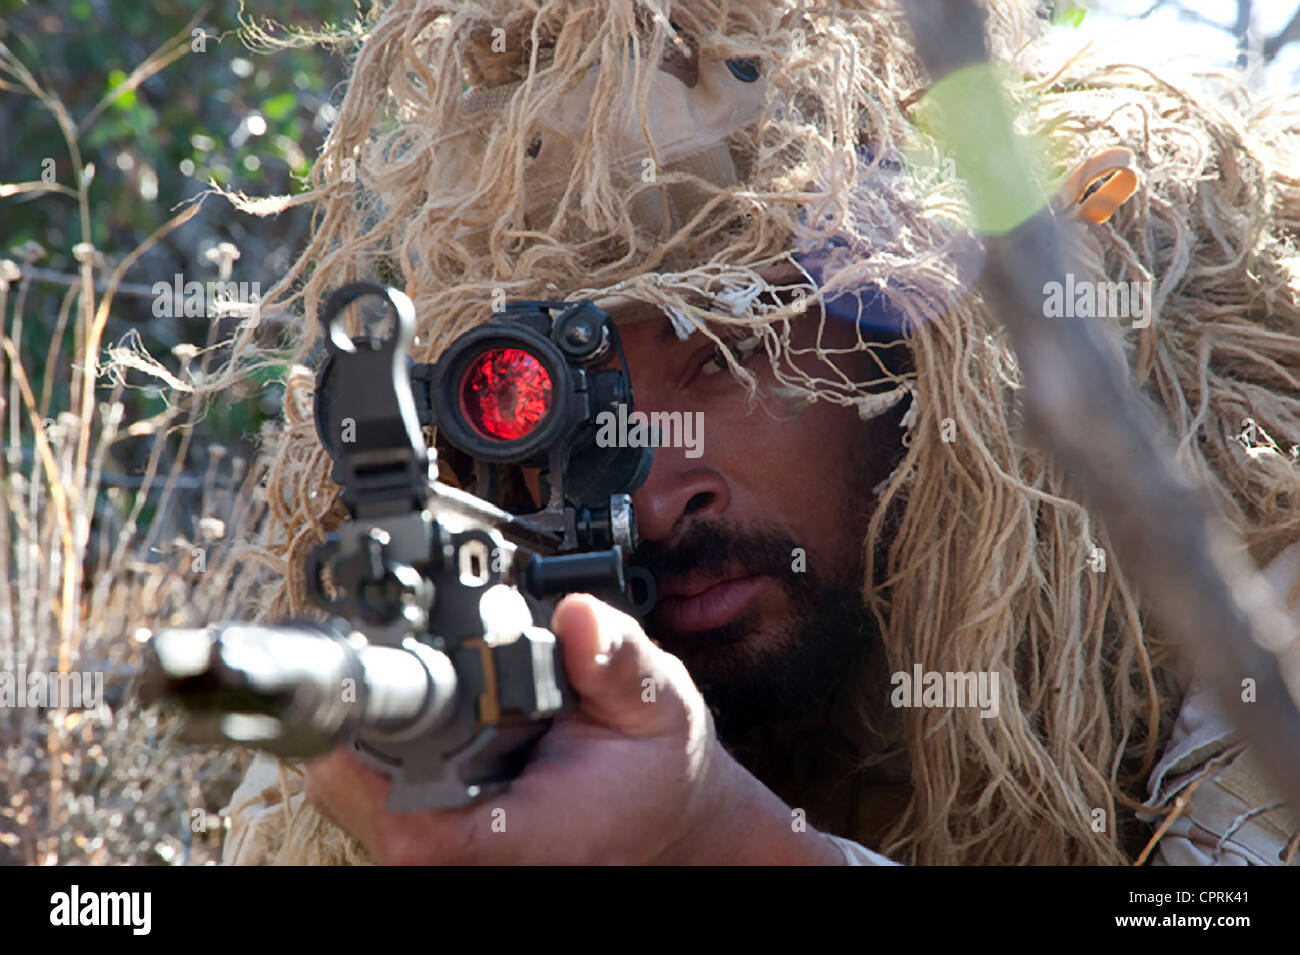 US Navy SEALs during sniper combat training - Stock Image